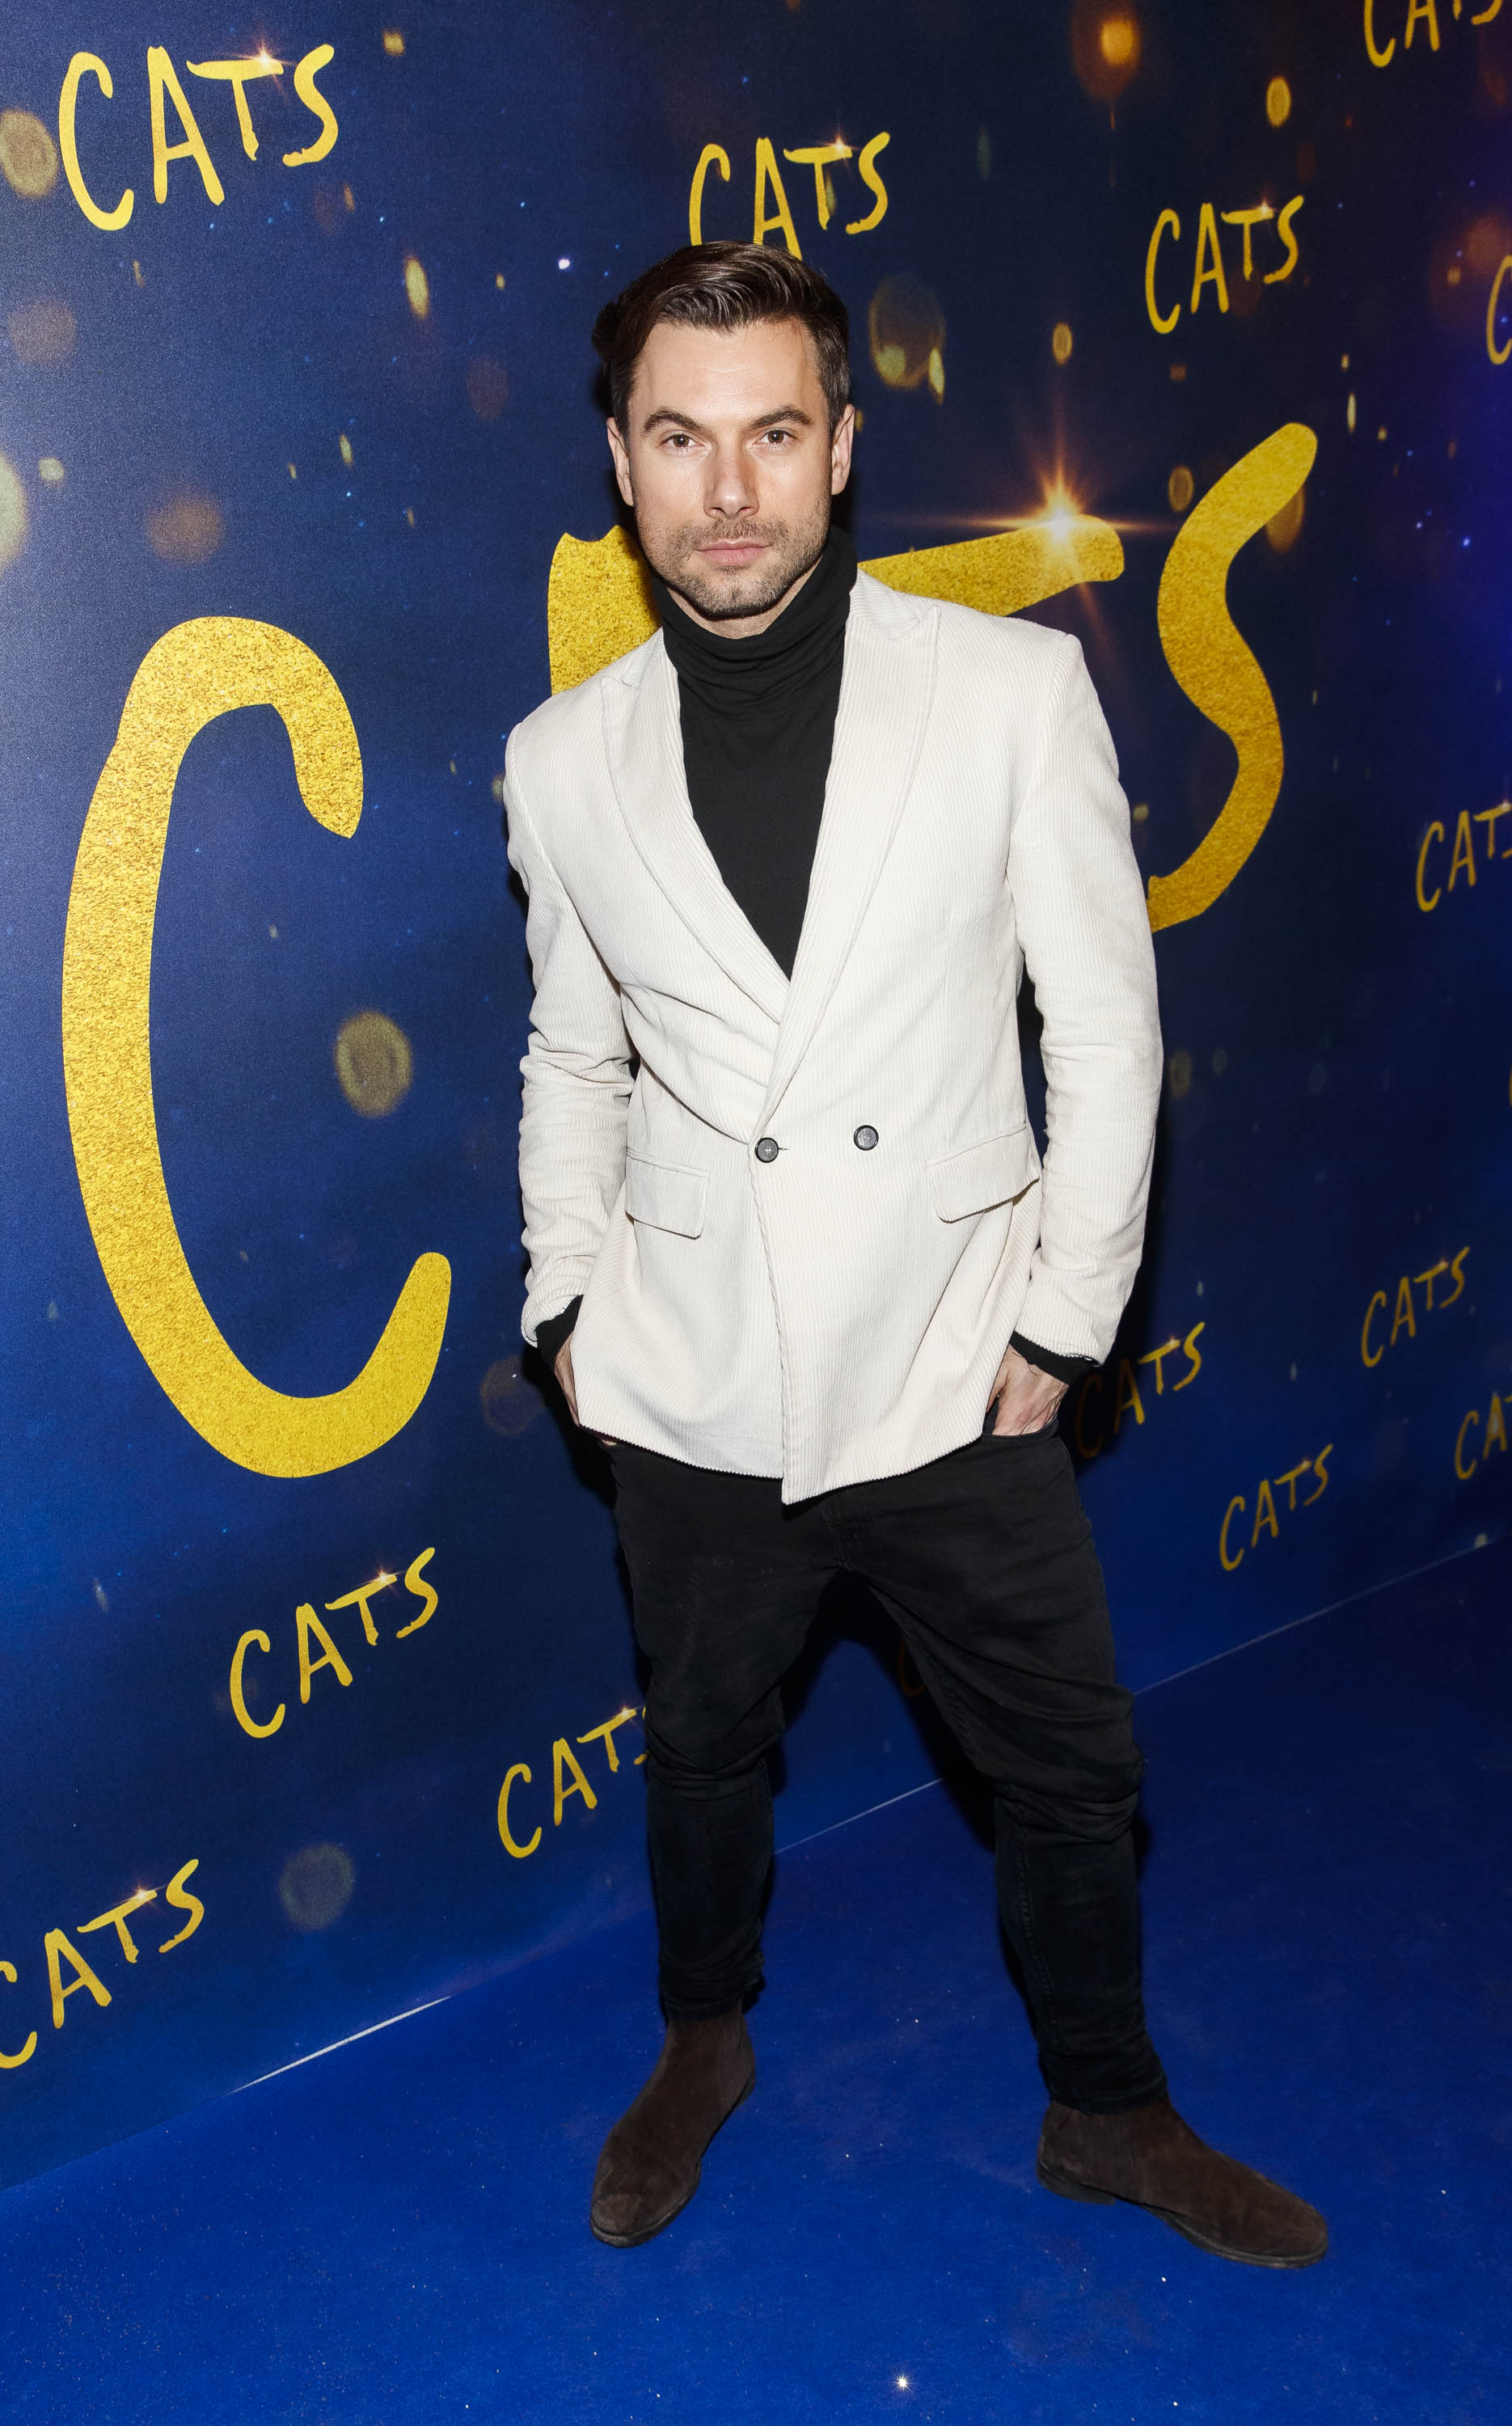 Robert Rowinski pictured at the Irish premiere screening of 'Cats' at The Stella Theatre, Rathmines. Picture: Andres Poveda